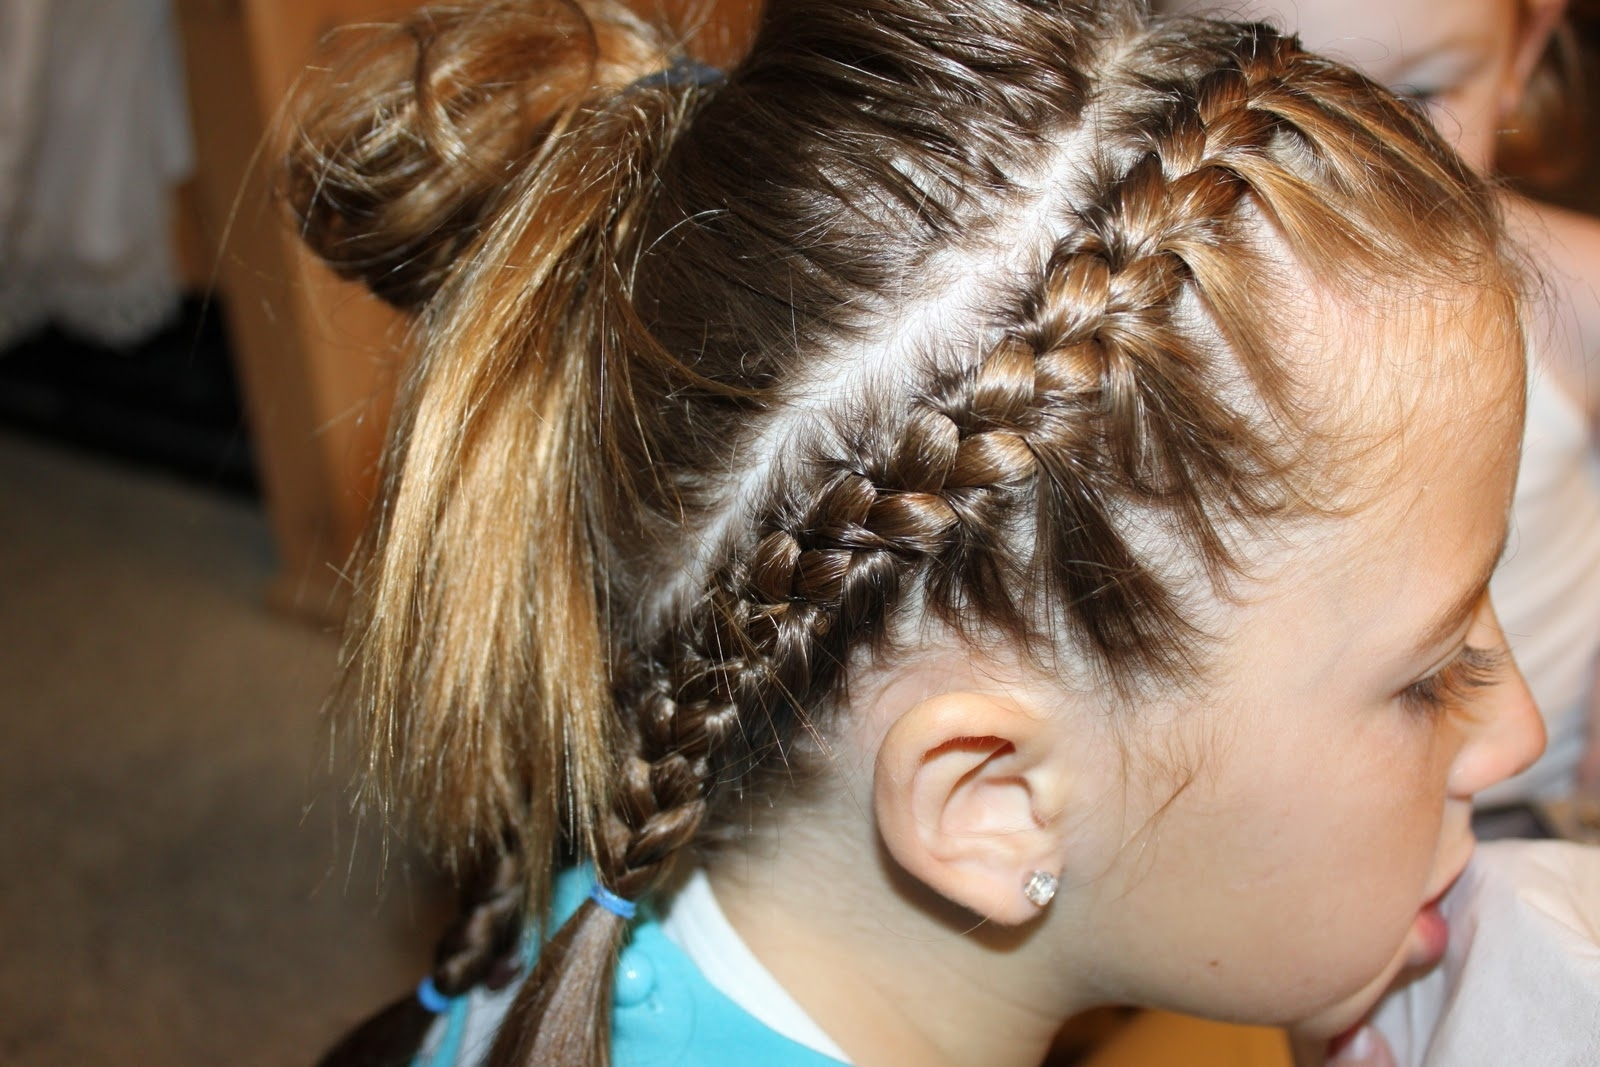 Hairstyles For Girls. (View 10 of 15)